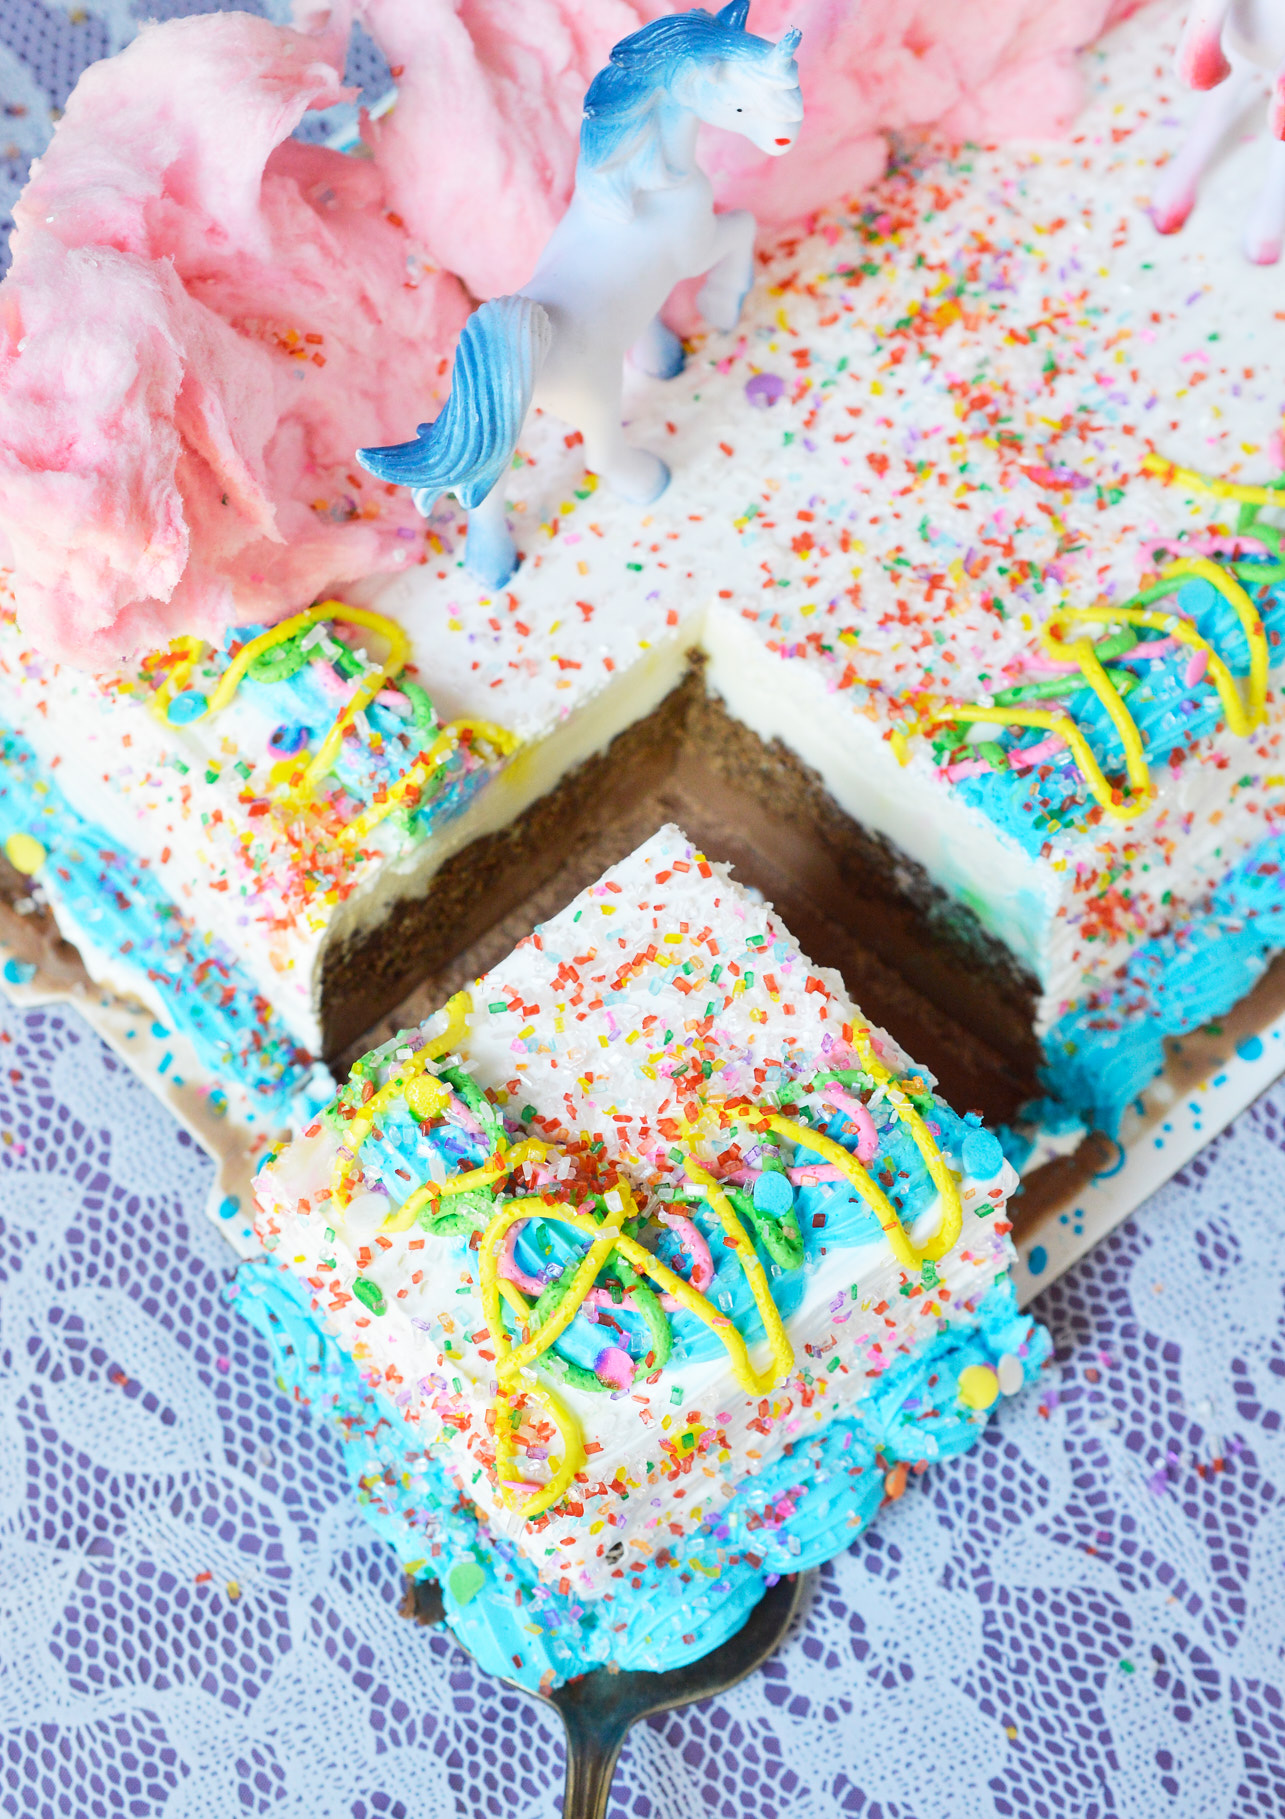 Get the party started with this Cotton Candy Unicorn Party Punch and Unicorn Ice Cream Cake! The punch recipe is made simply with 2 ingredients and the ice cream cake takes just minutes to decorate. The kids will love this fun and colorful drink!